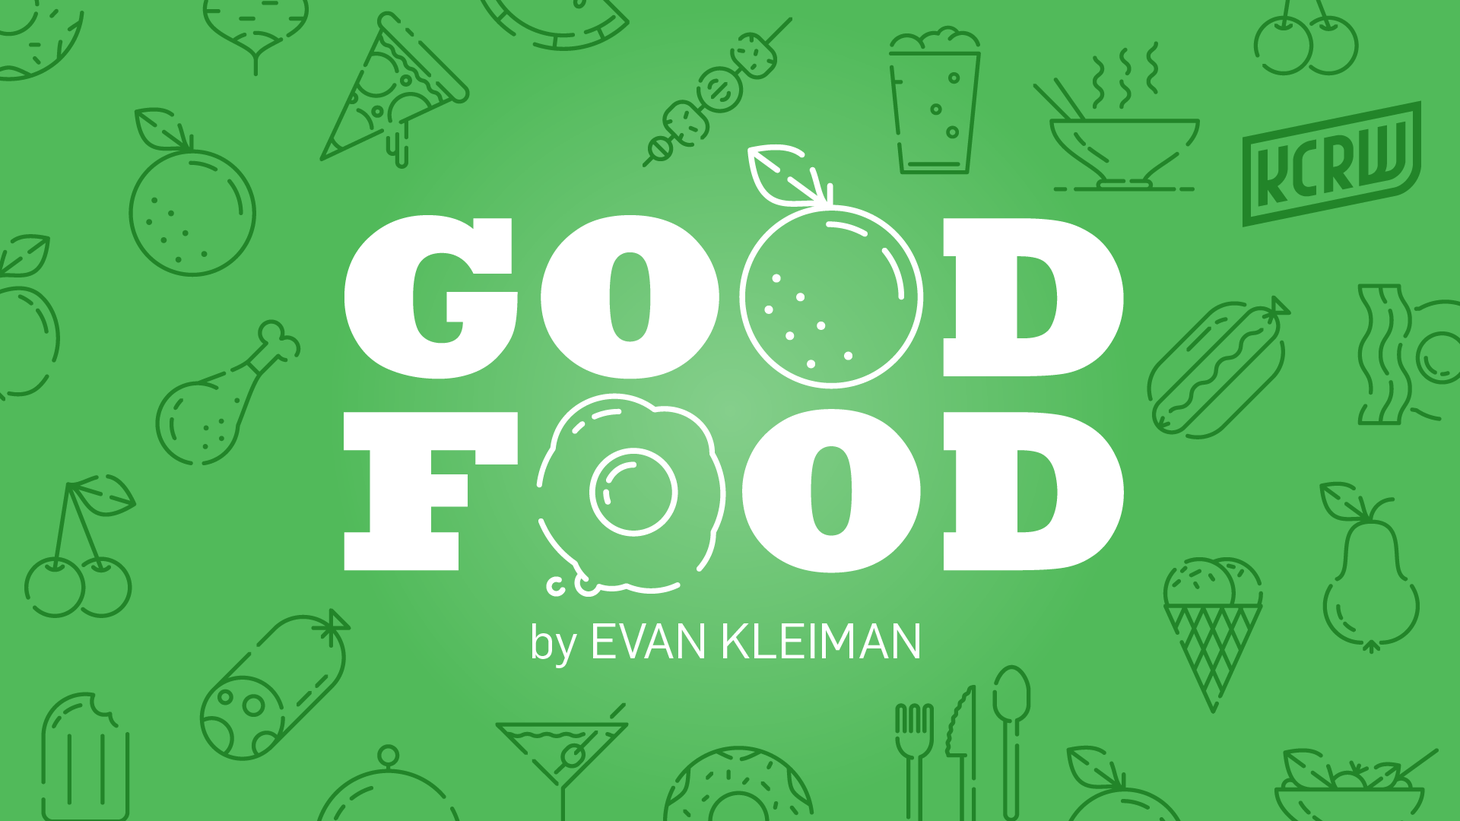 Evan Kleiman talks about breakfast, from eggs benedict to broiled grapefruits. We also visit with our food industry correspondent about radio frequencies attached to supermarket products, and make some seafood tacos for lunch.  All this plus the farmers market report.